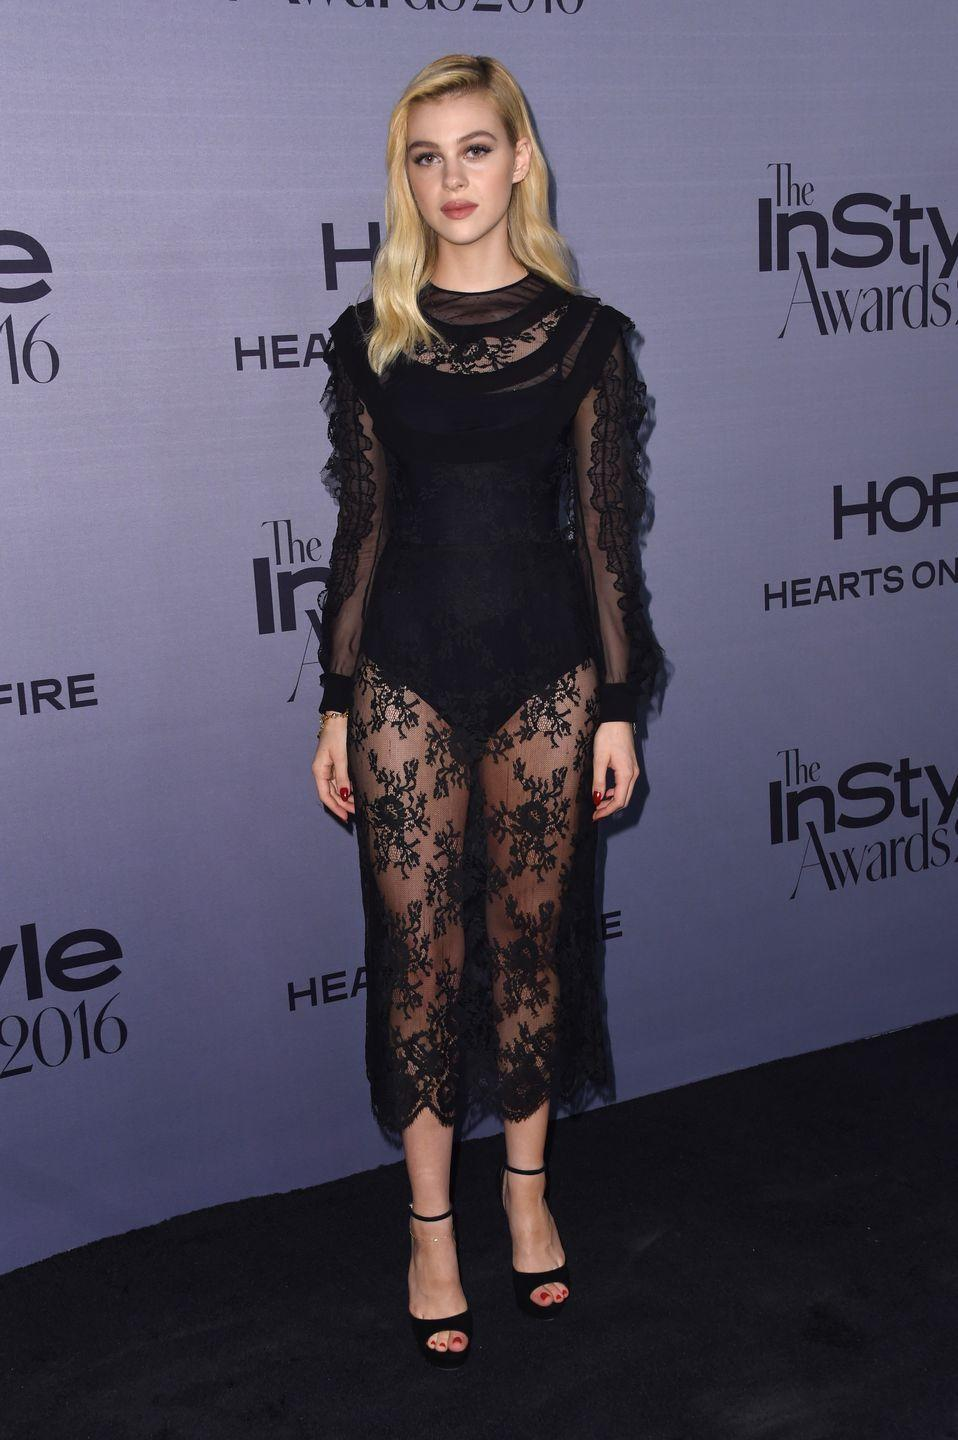 <p><span>The star attended the </span>InStyle<span> Awards in a sheer black midi dress with black heels. </span><br></p>